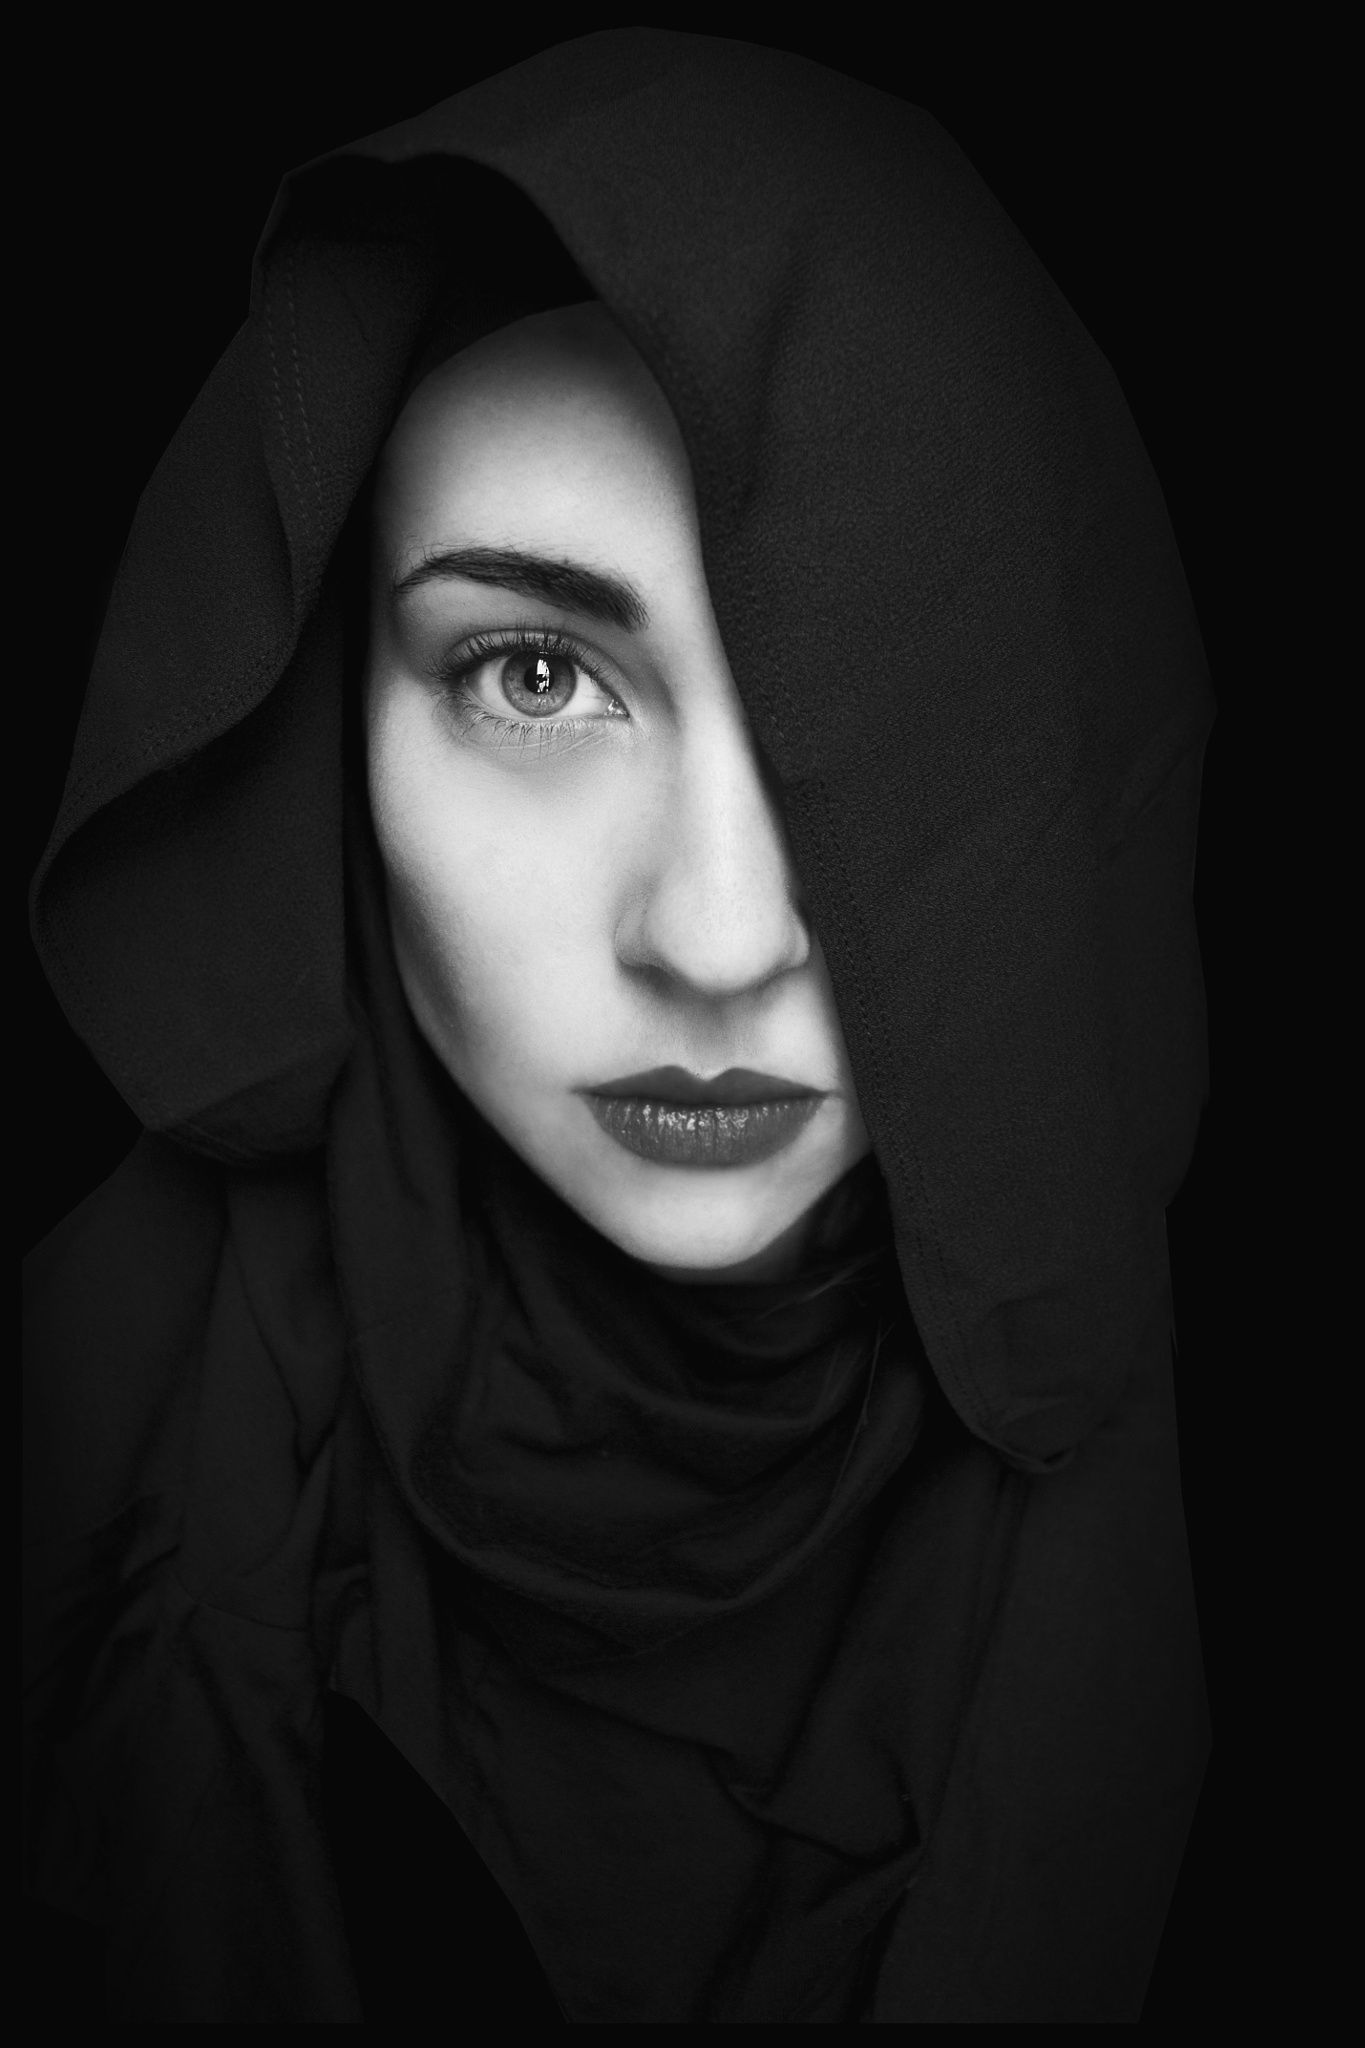 Black is my Colour by Marianna Roussou on 500px